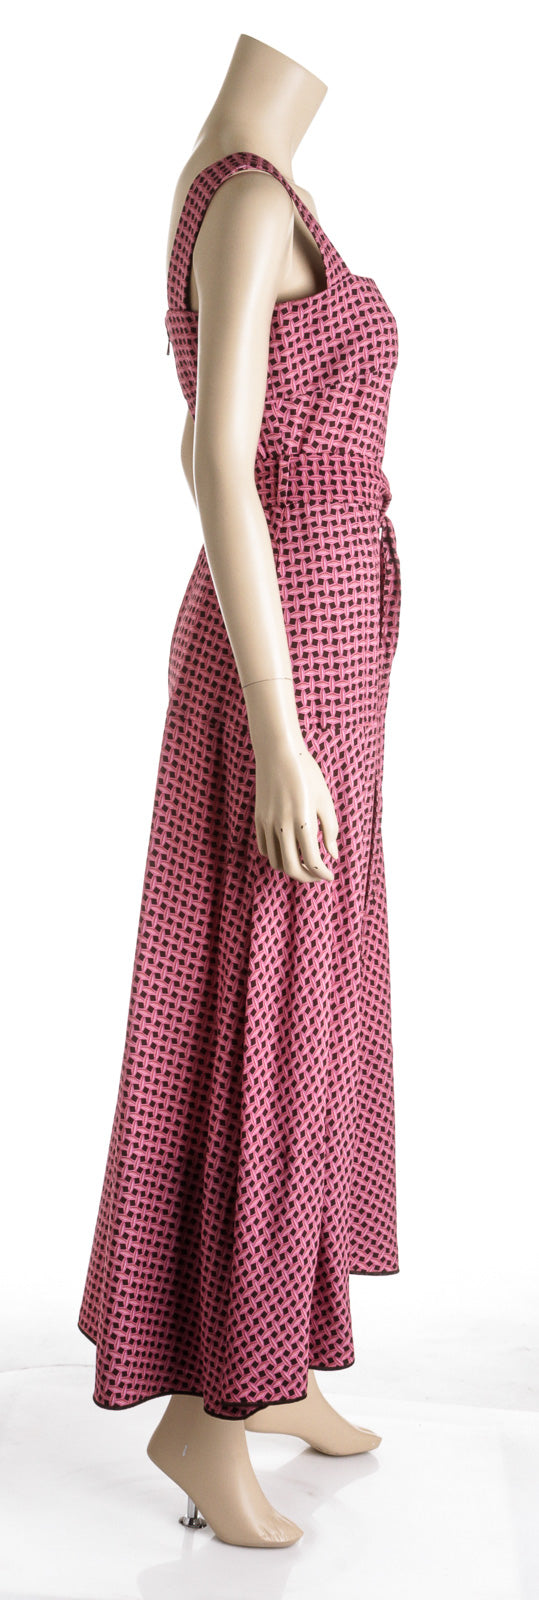 Louis Vuitton Pink and Brown Print Belted Sundress (Size 38)